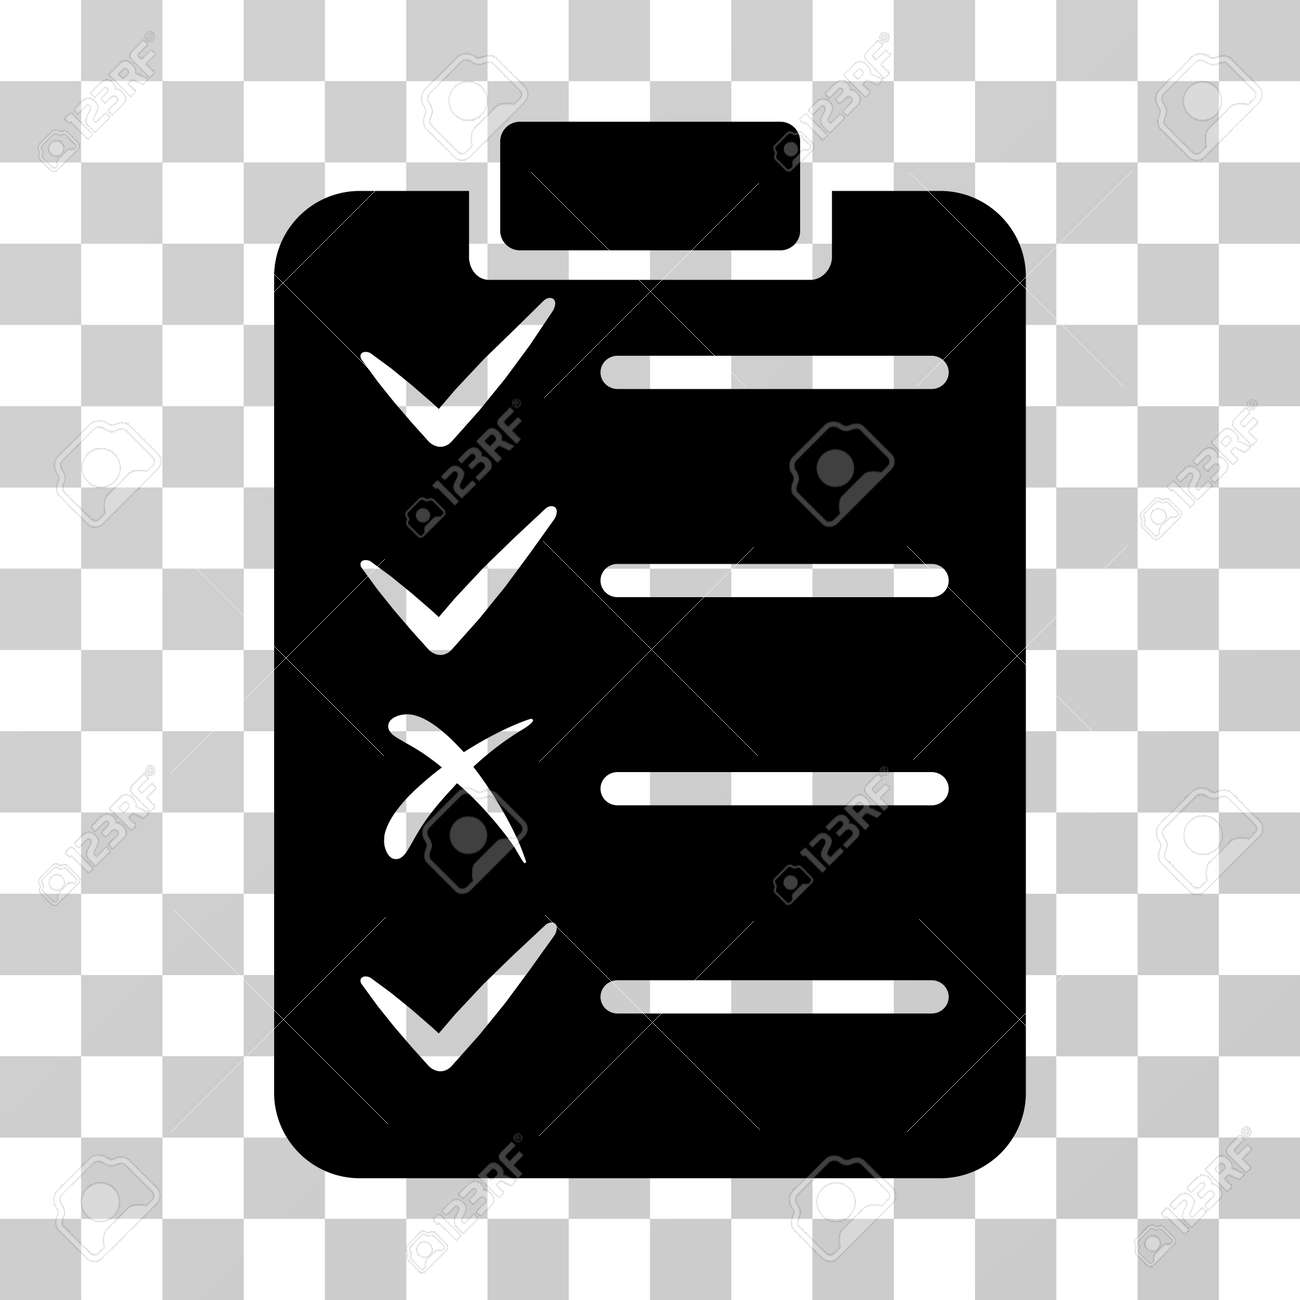 task list icon vector illustration style is flat iconic symbol black color transparent